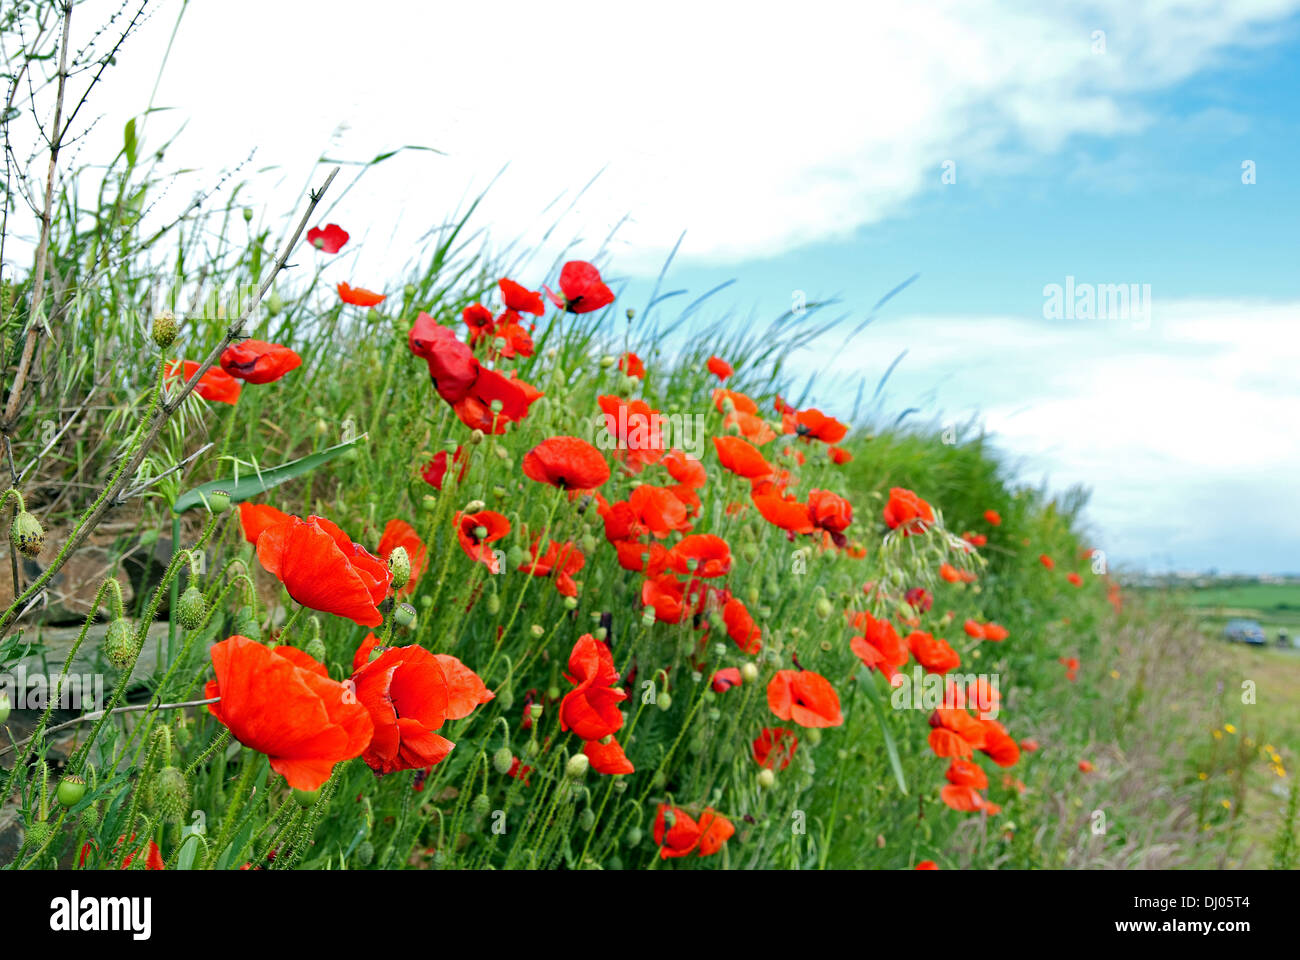 Roadside Wild Flowers Poppy Stock Photos   Roadside Wild Flowers     poppies growing by the roadside   Stock Image